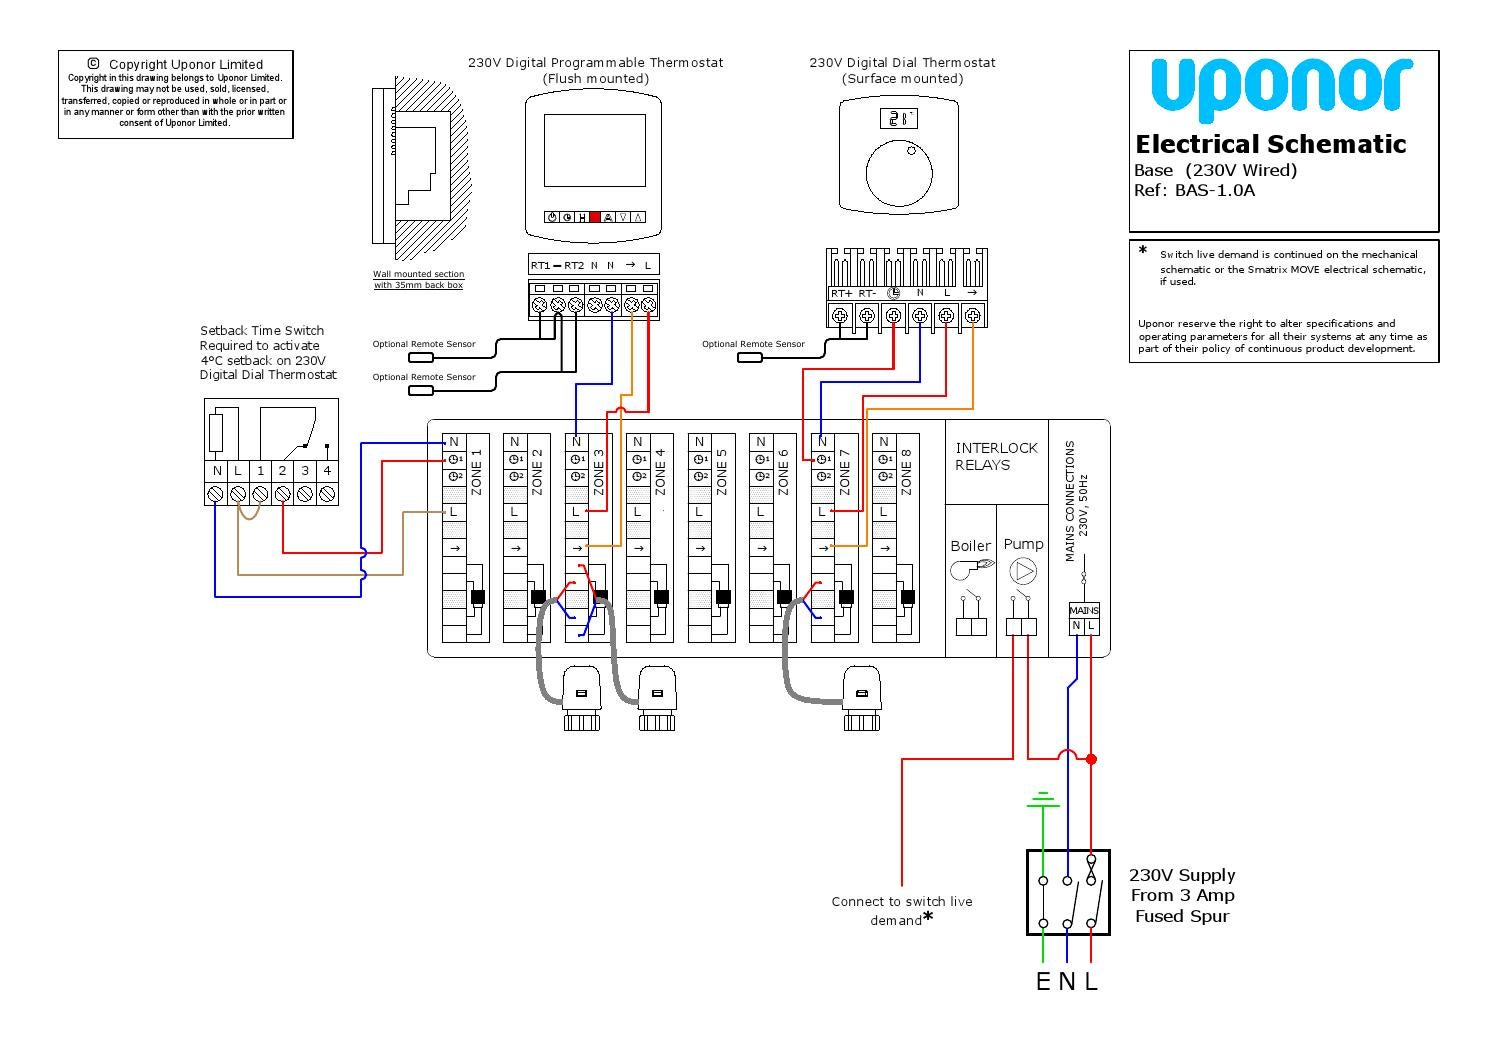 underfloor heating wiring diagrams 1999 mustang cobra diagram 230v control system by uponor uk issuu